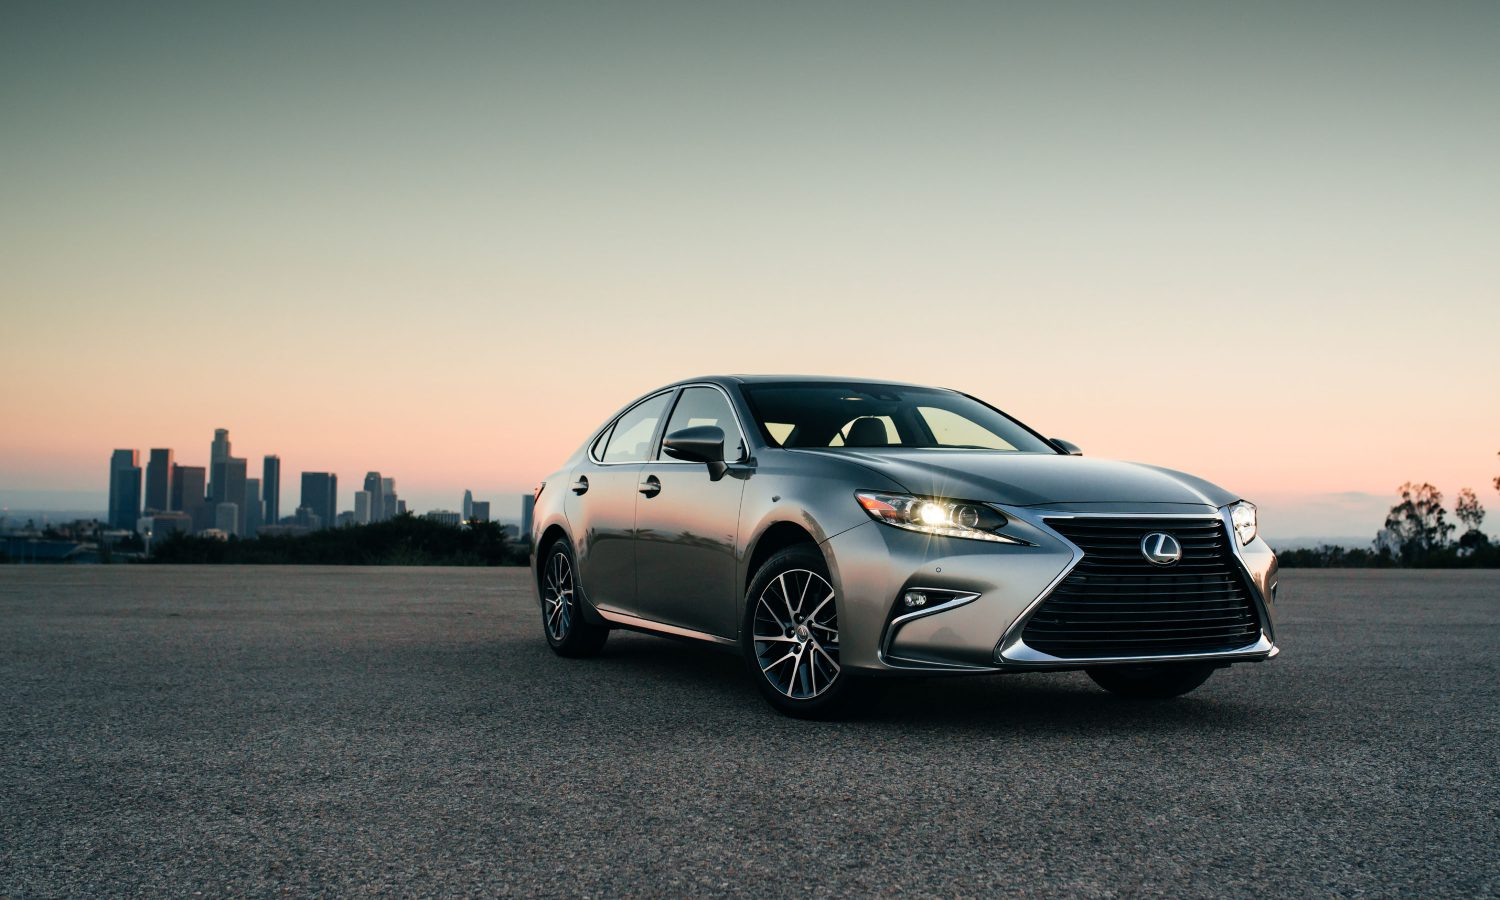 2018 Lexus ES 350 Standard Luxury and Comfort